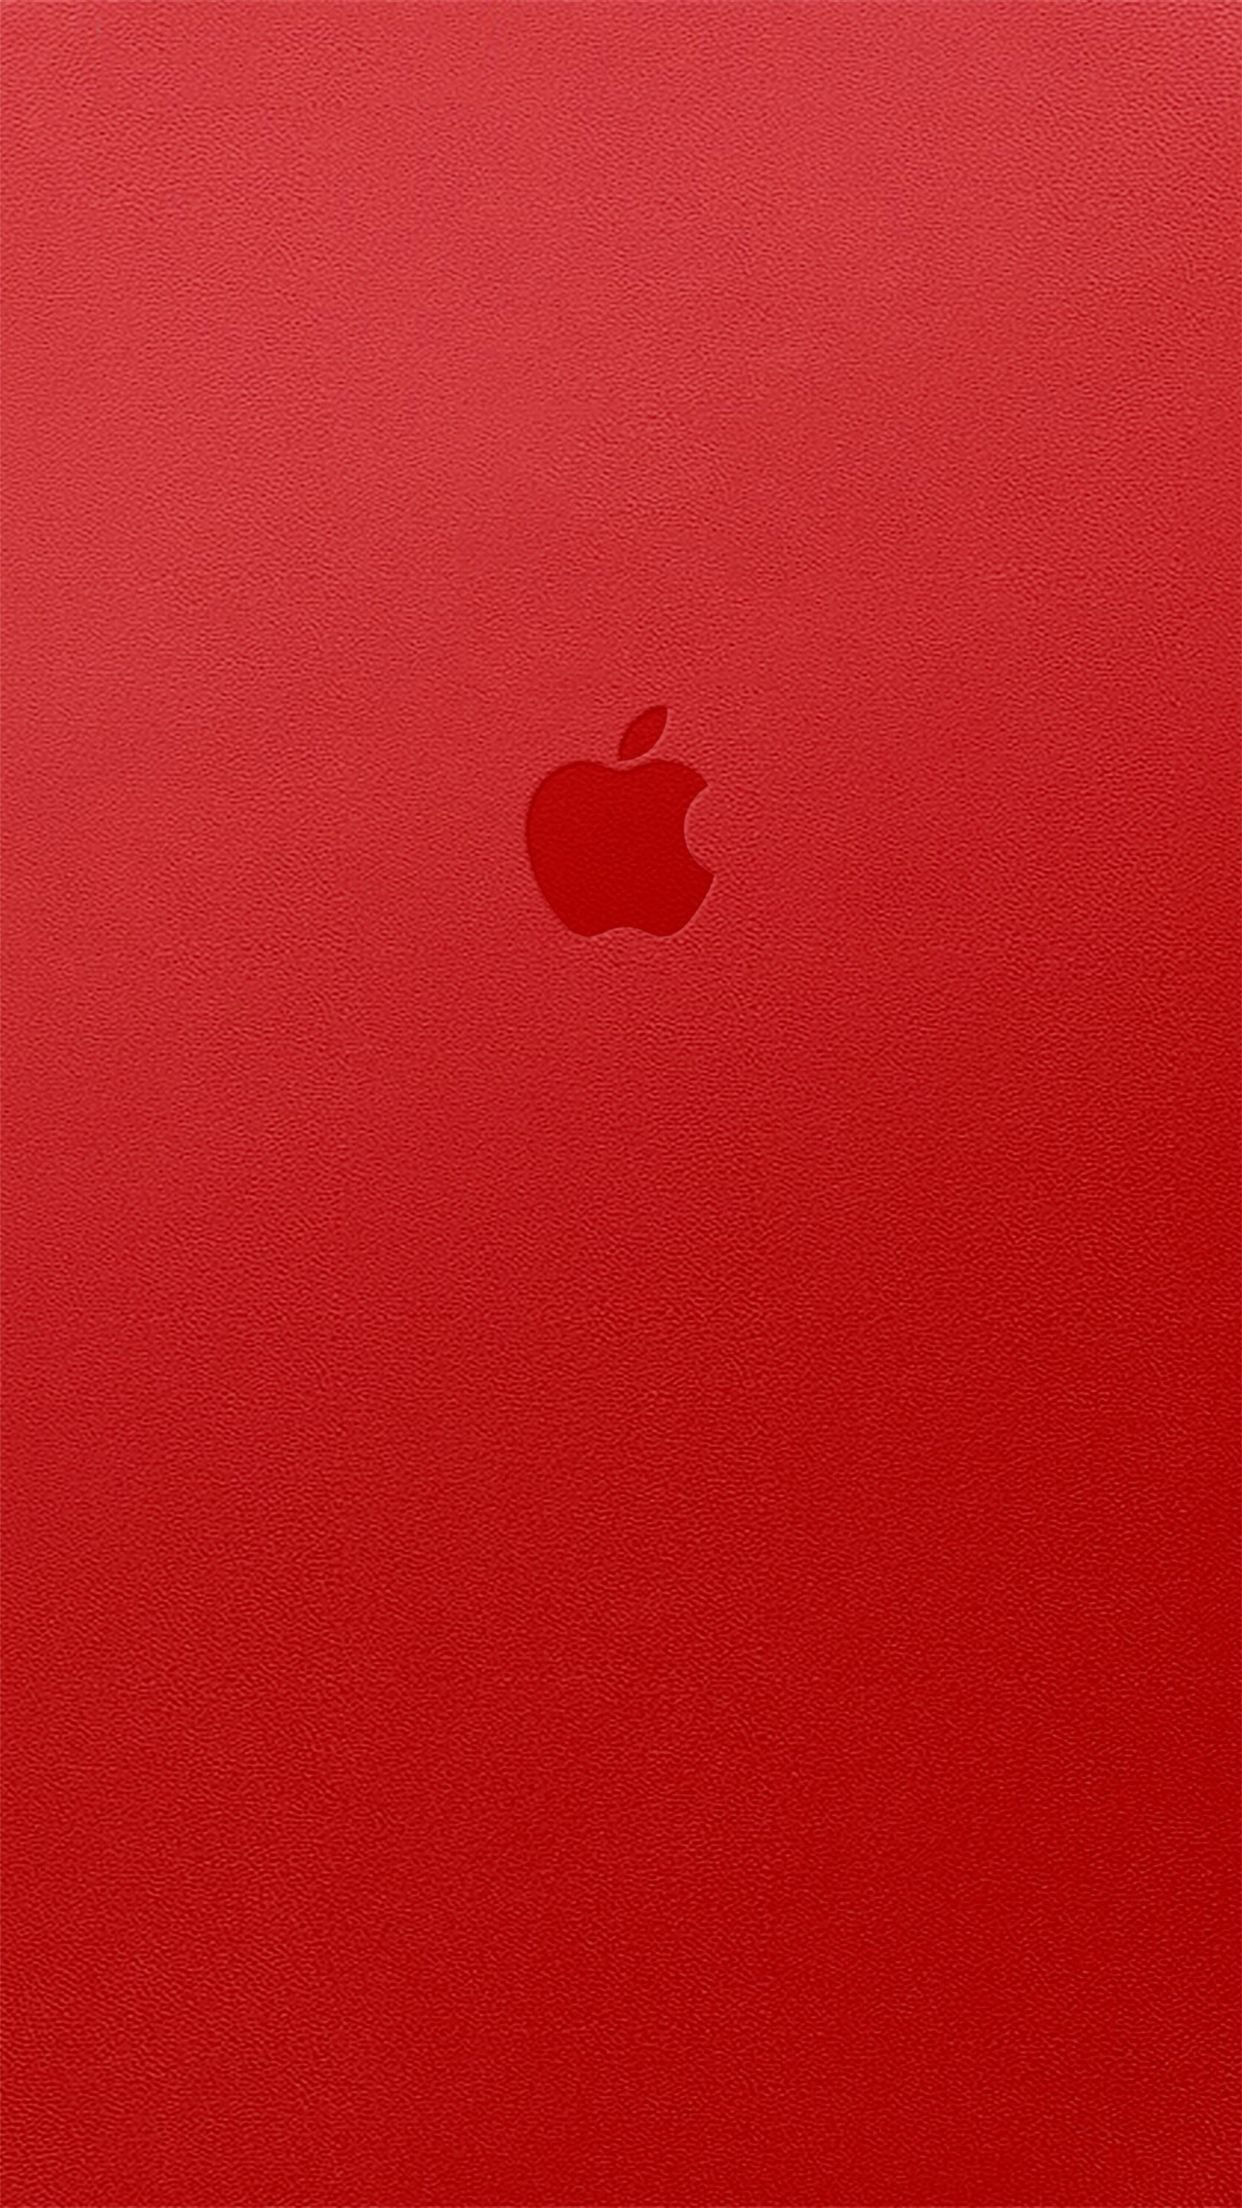 1242x2208 86+ Red Iphone Wallpapers on WallpaperPlay